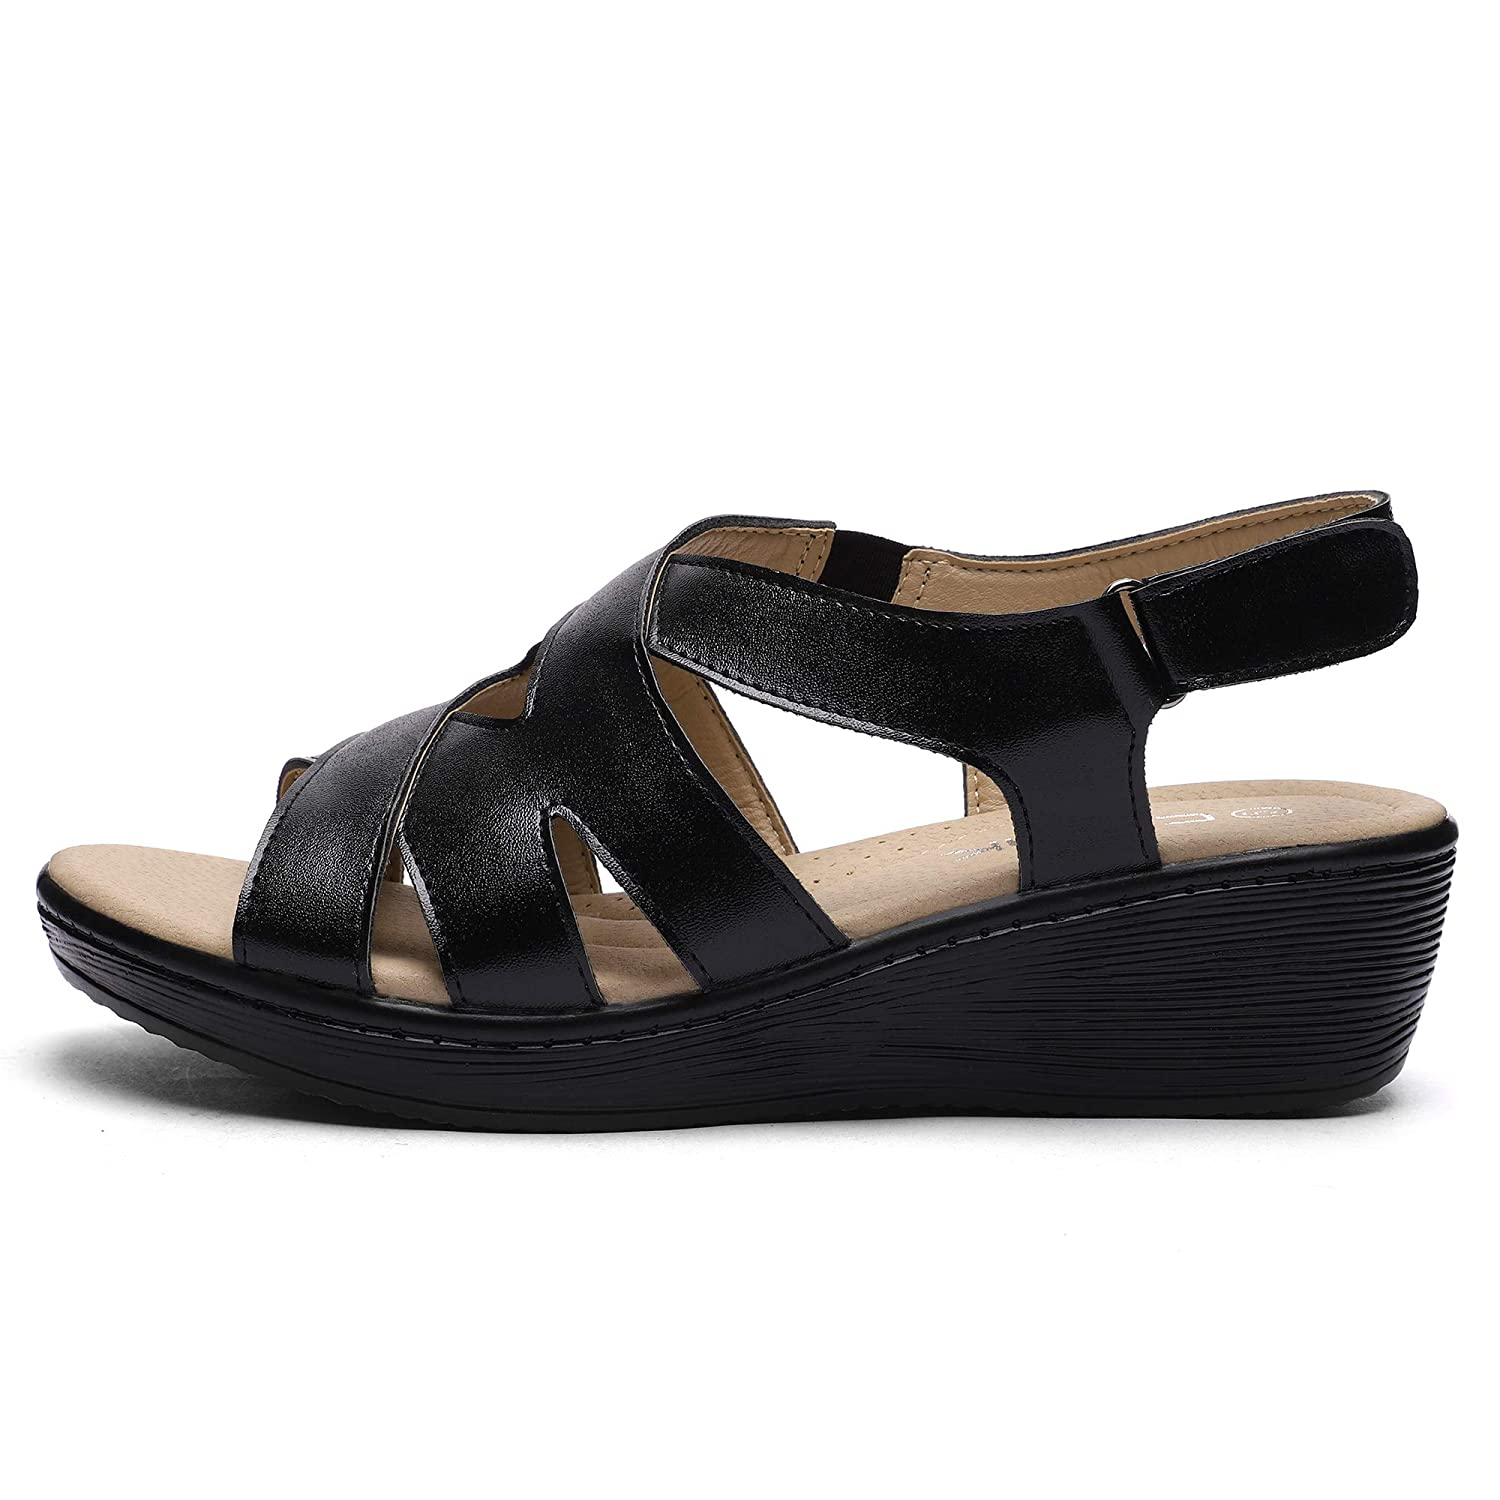 2fb53b8fd0 Amazon.com | CINAK Womens Wedge Sandals Velcro Shoes-Comfort Platform Hook  and Loop Summer Flats Ladies Slip On | Platforms & Wedges